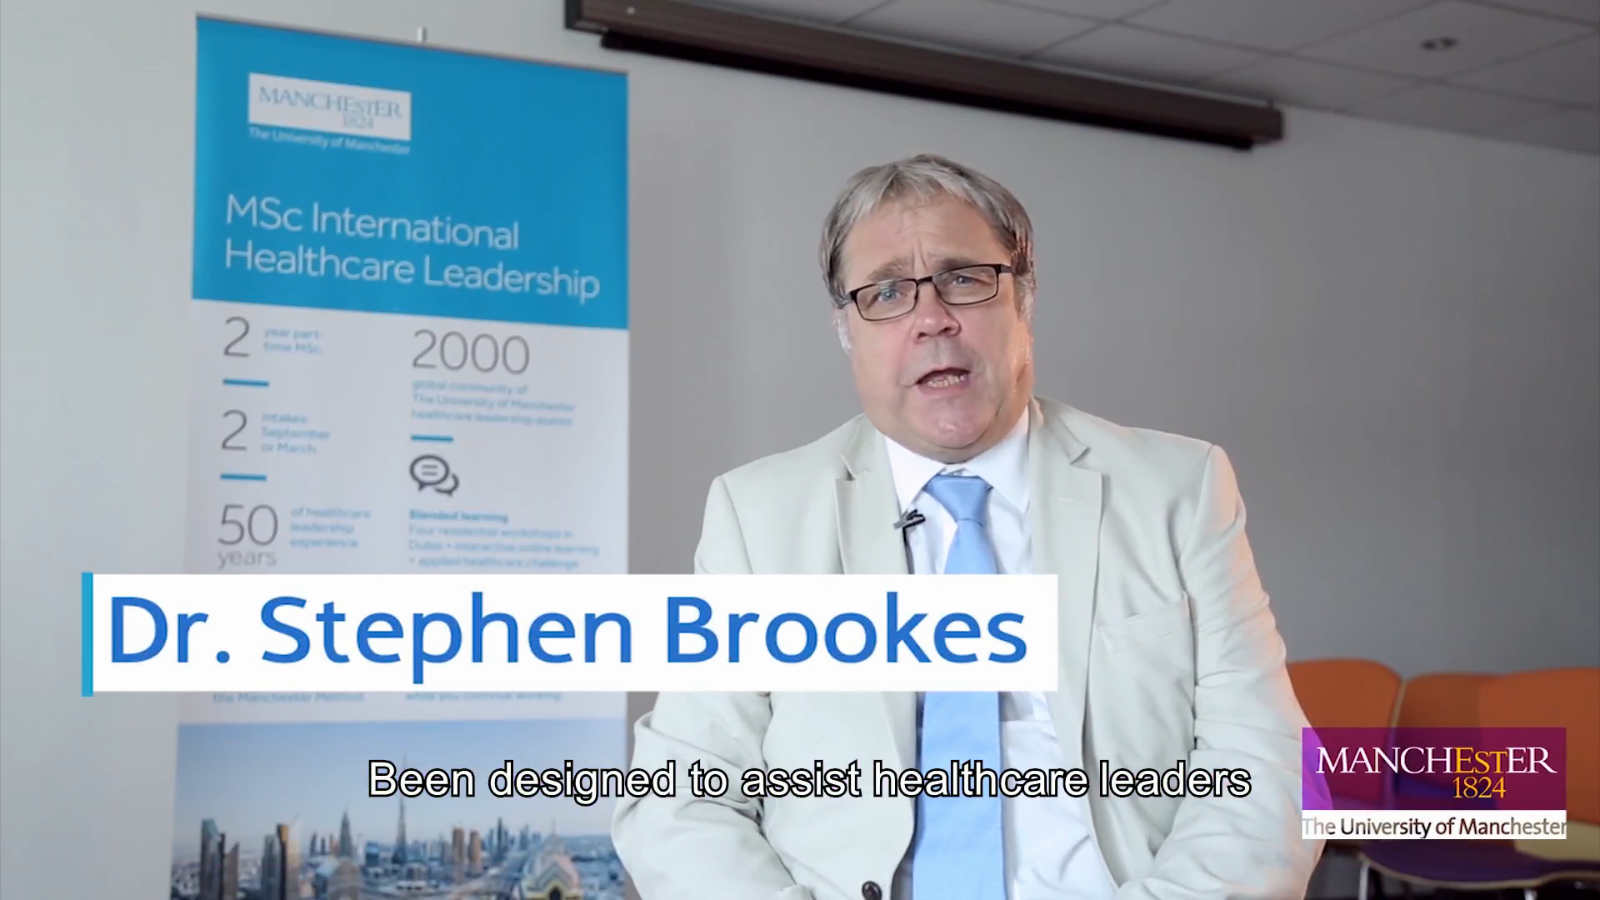 Dr Stephen Brookes